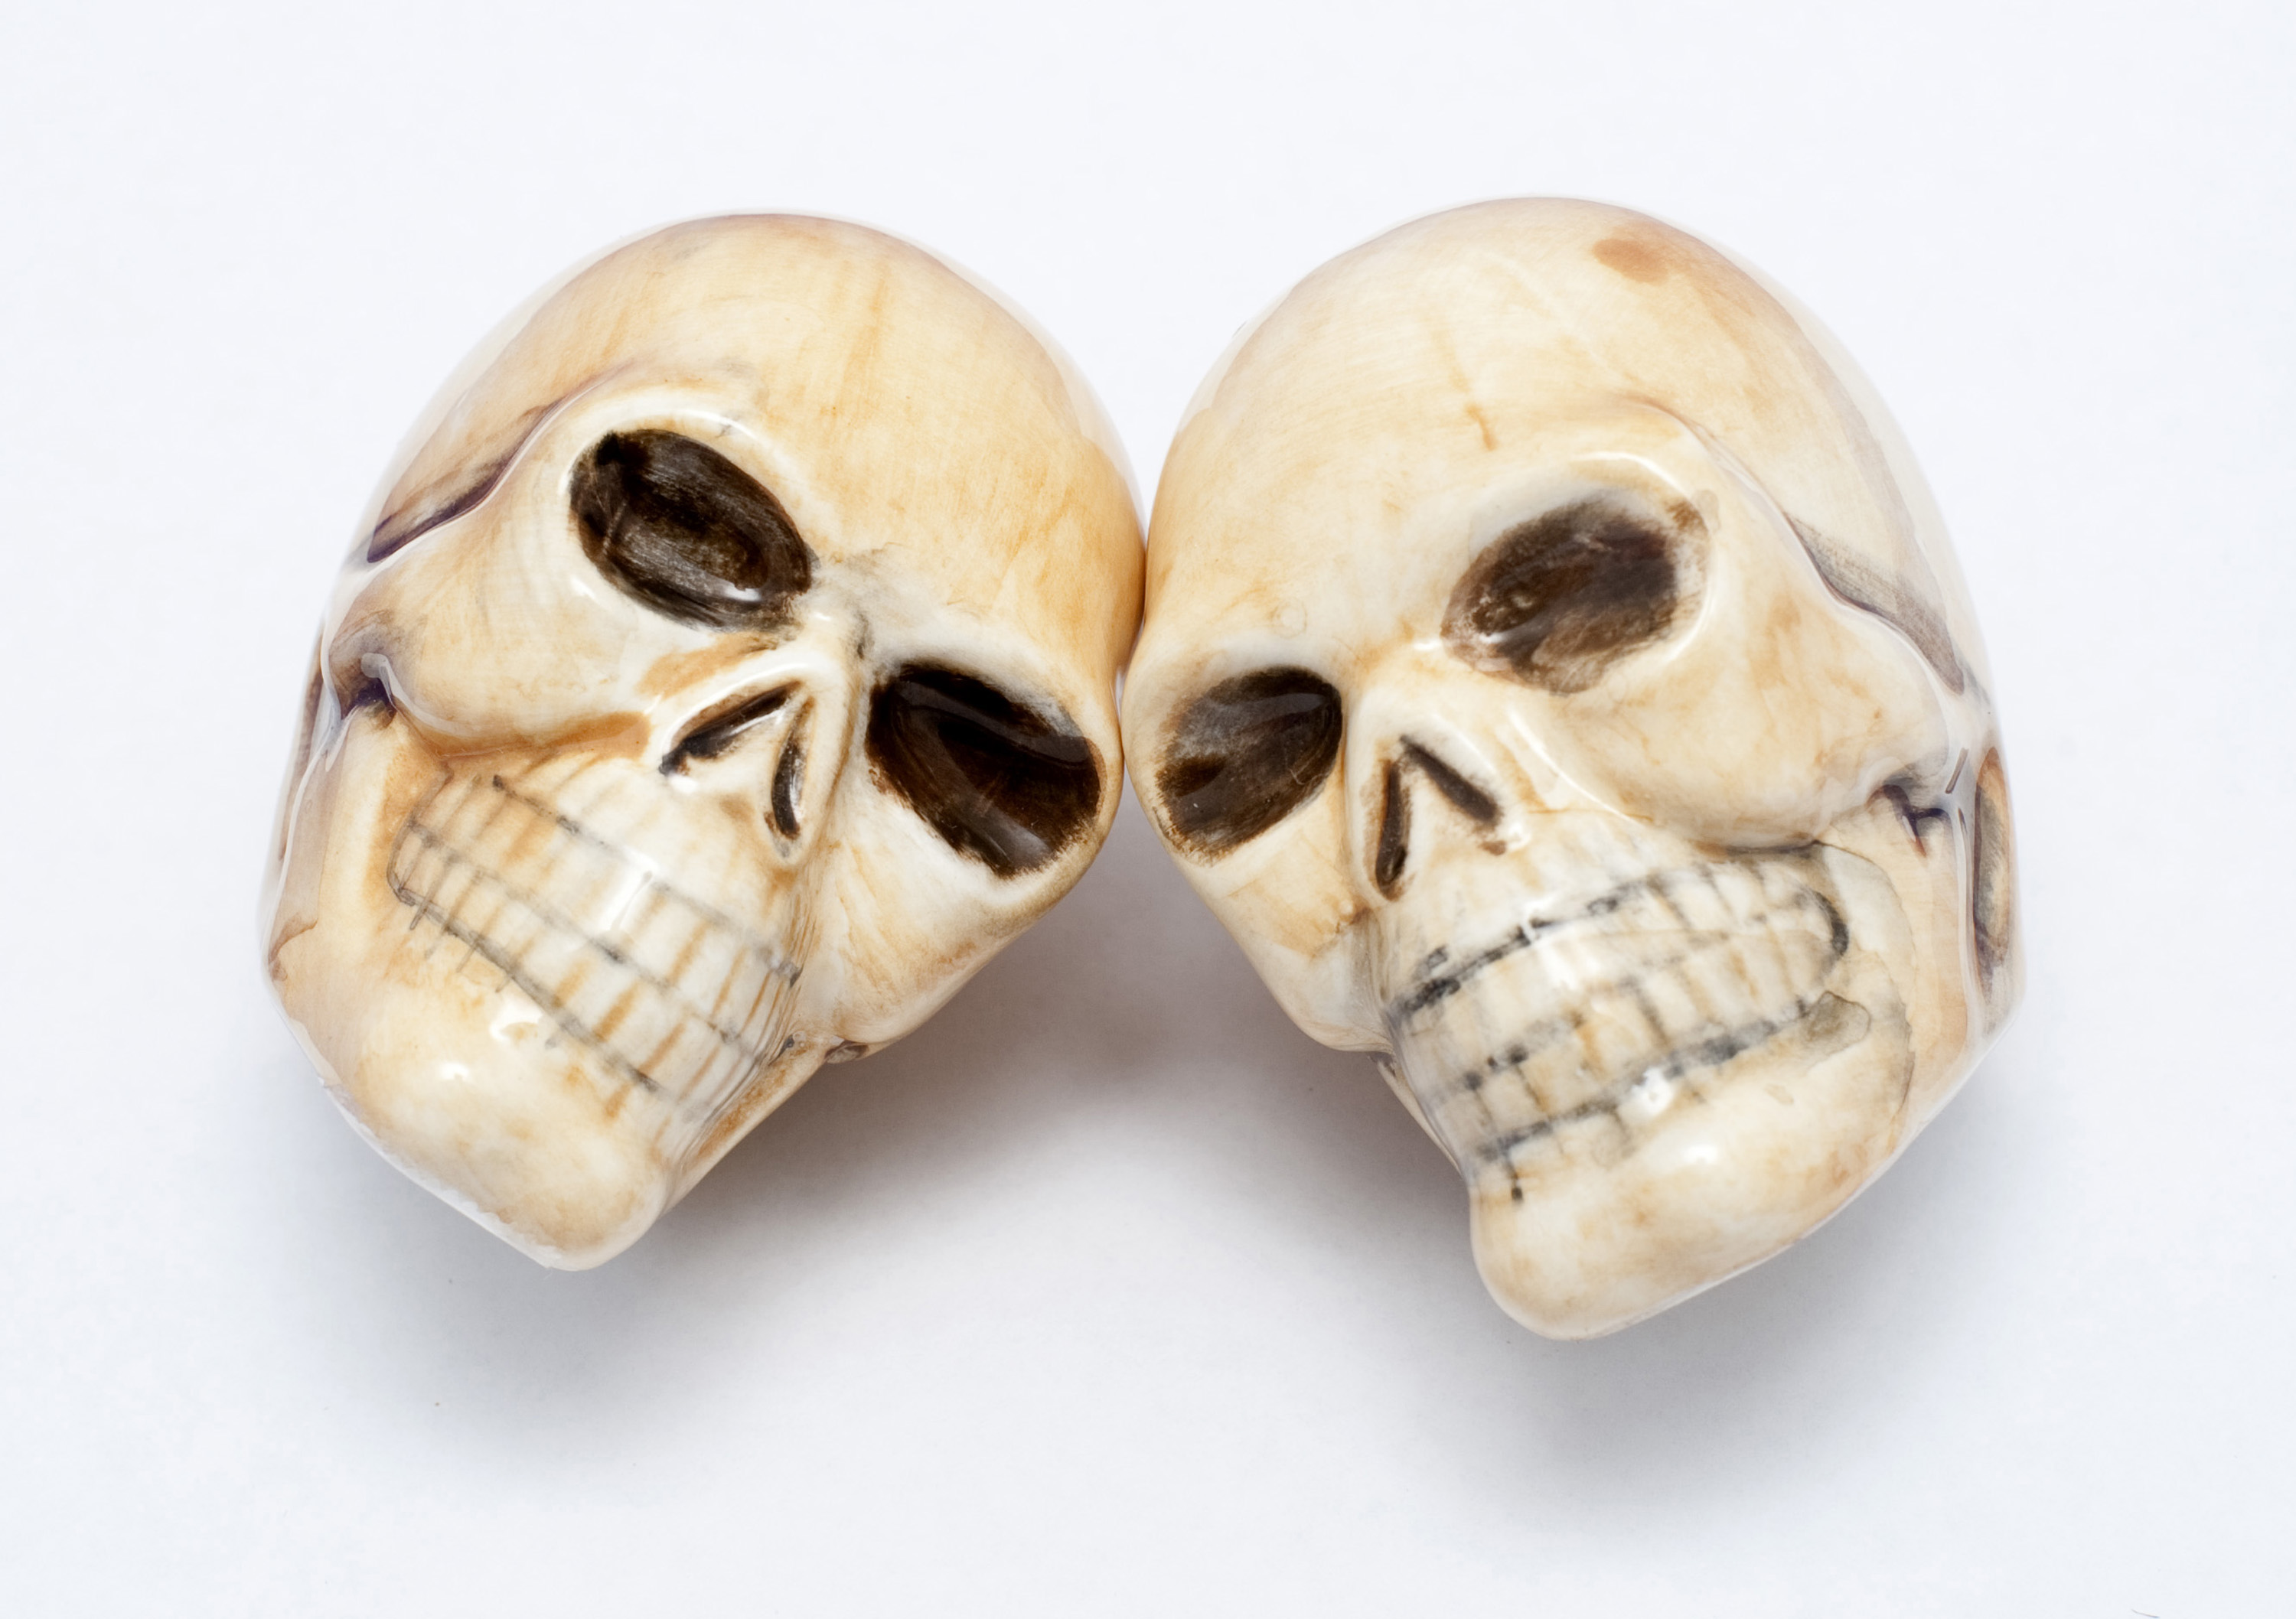 a pair of halloween ceramic skull decorations on white background - Ceramic Halloween Decorations